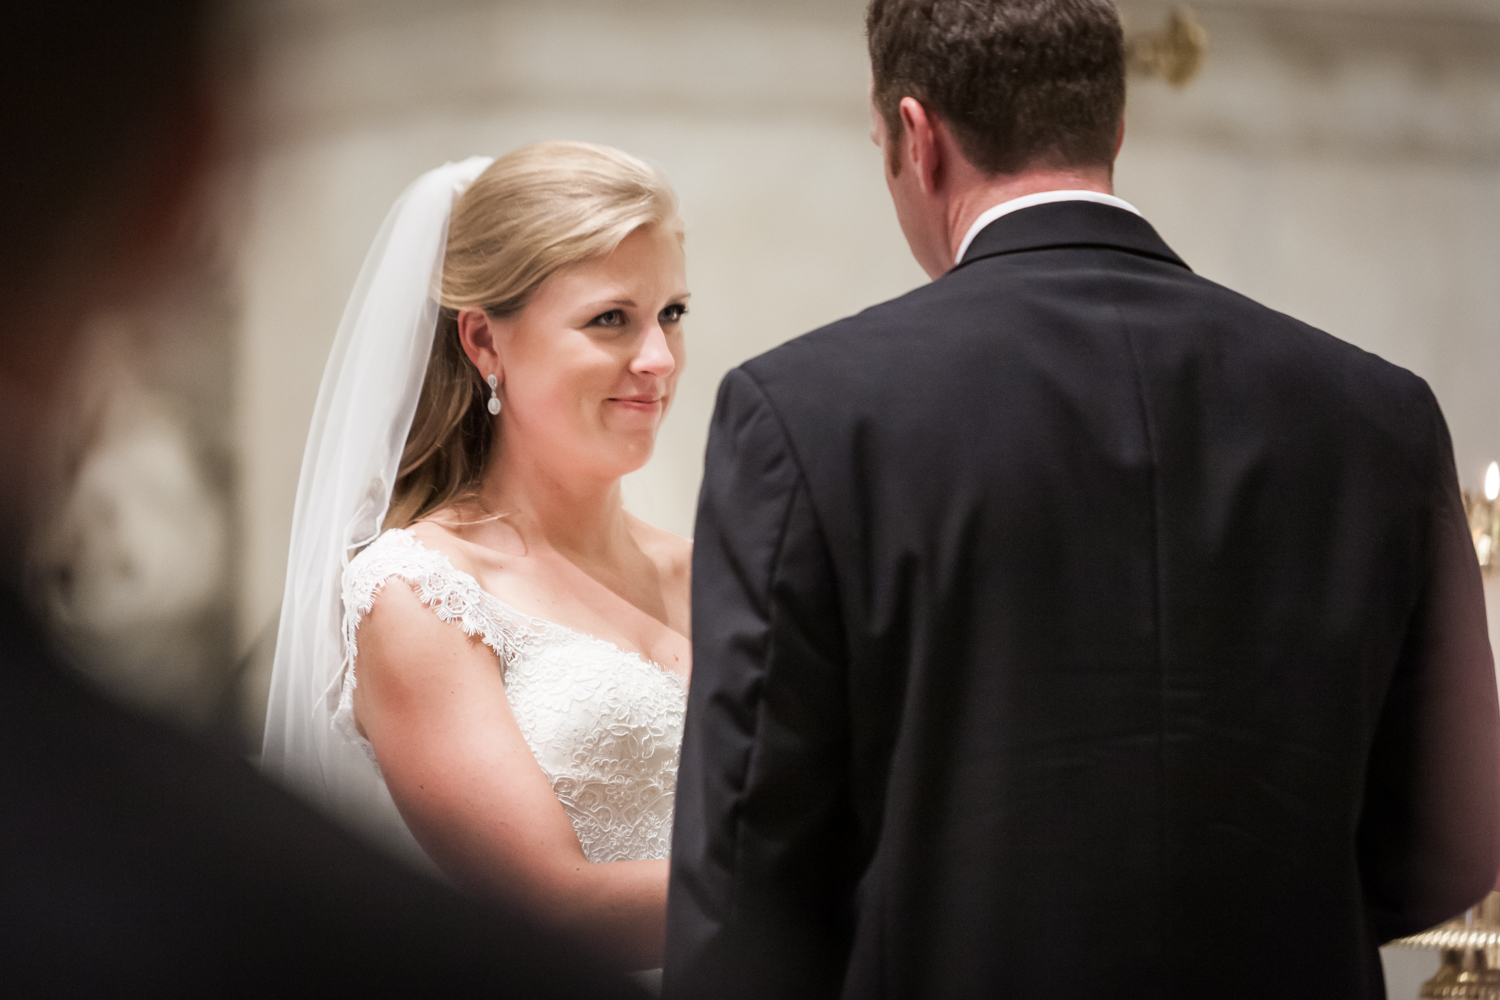 Bride listening to groom during St. Peter's Church wedding ceremony